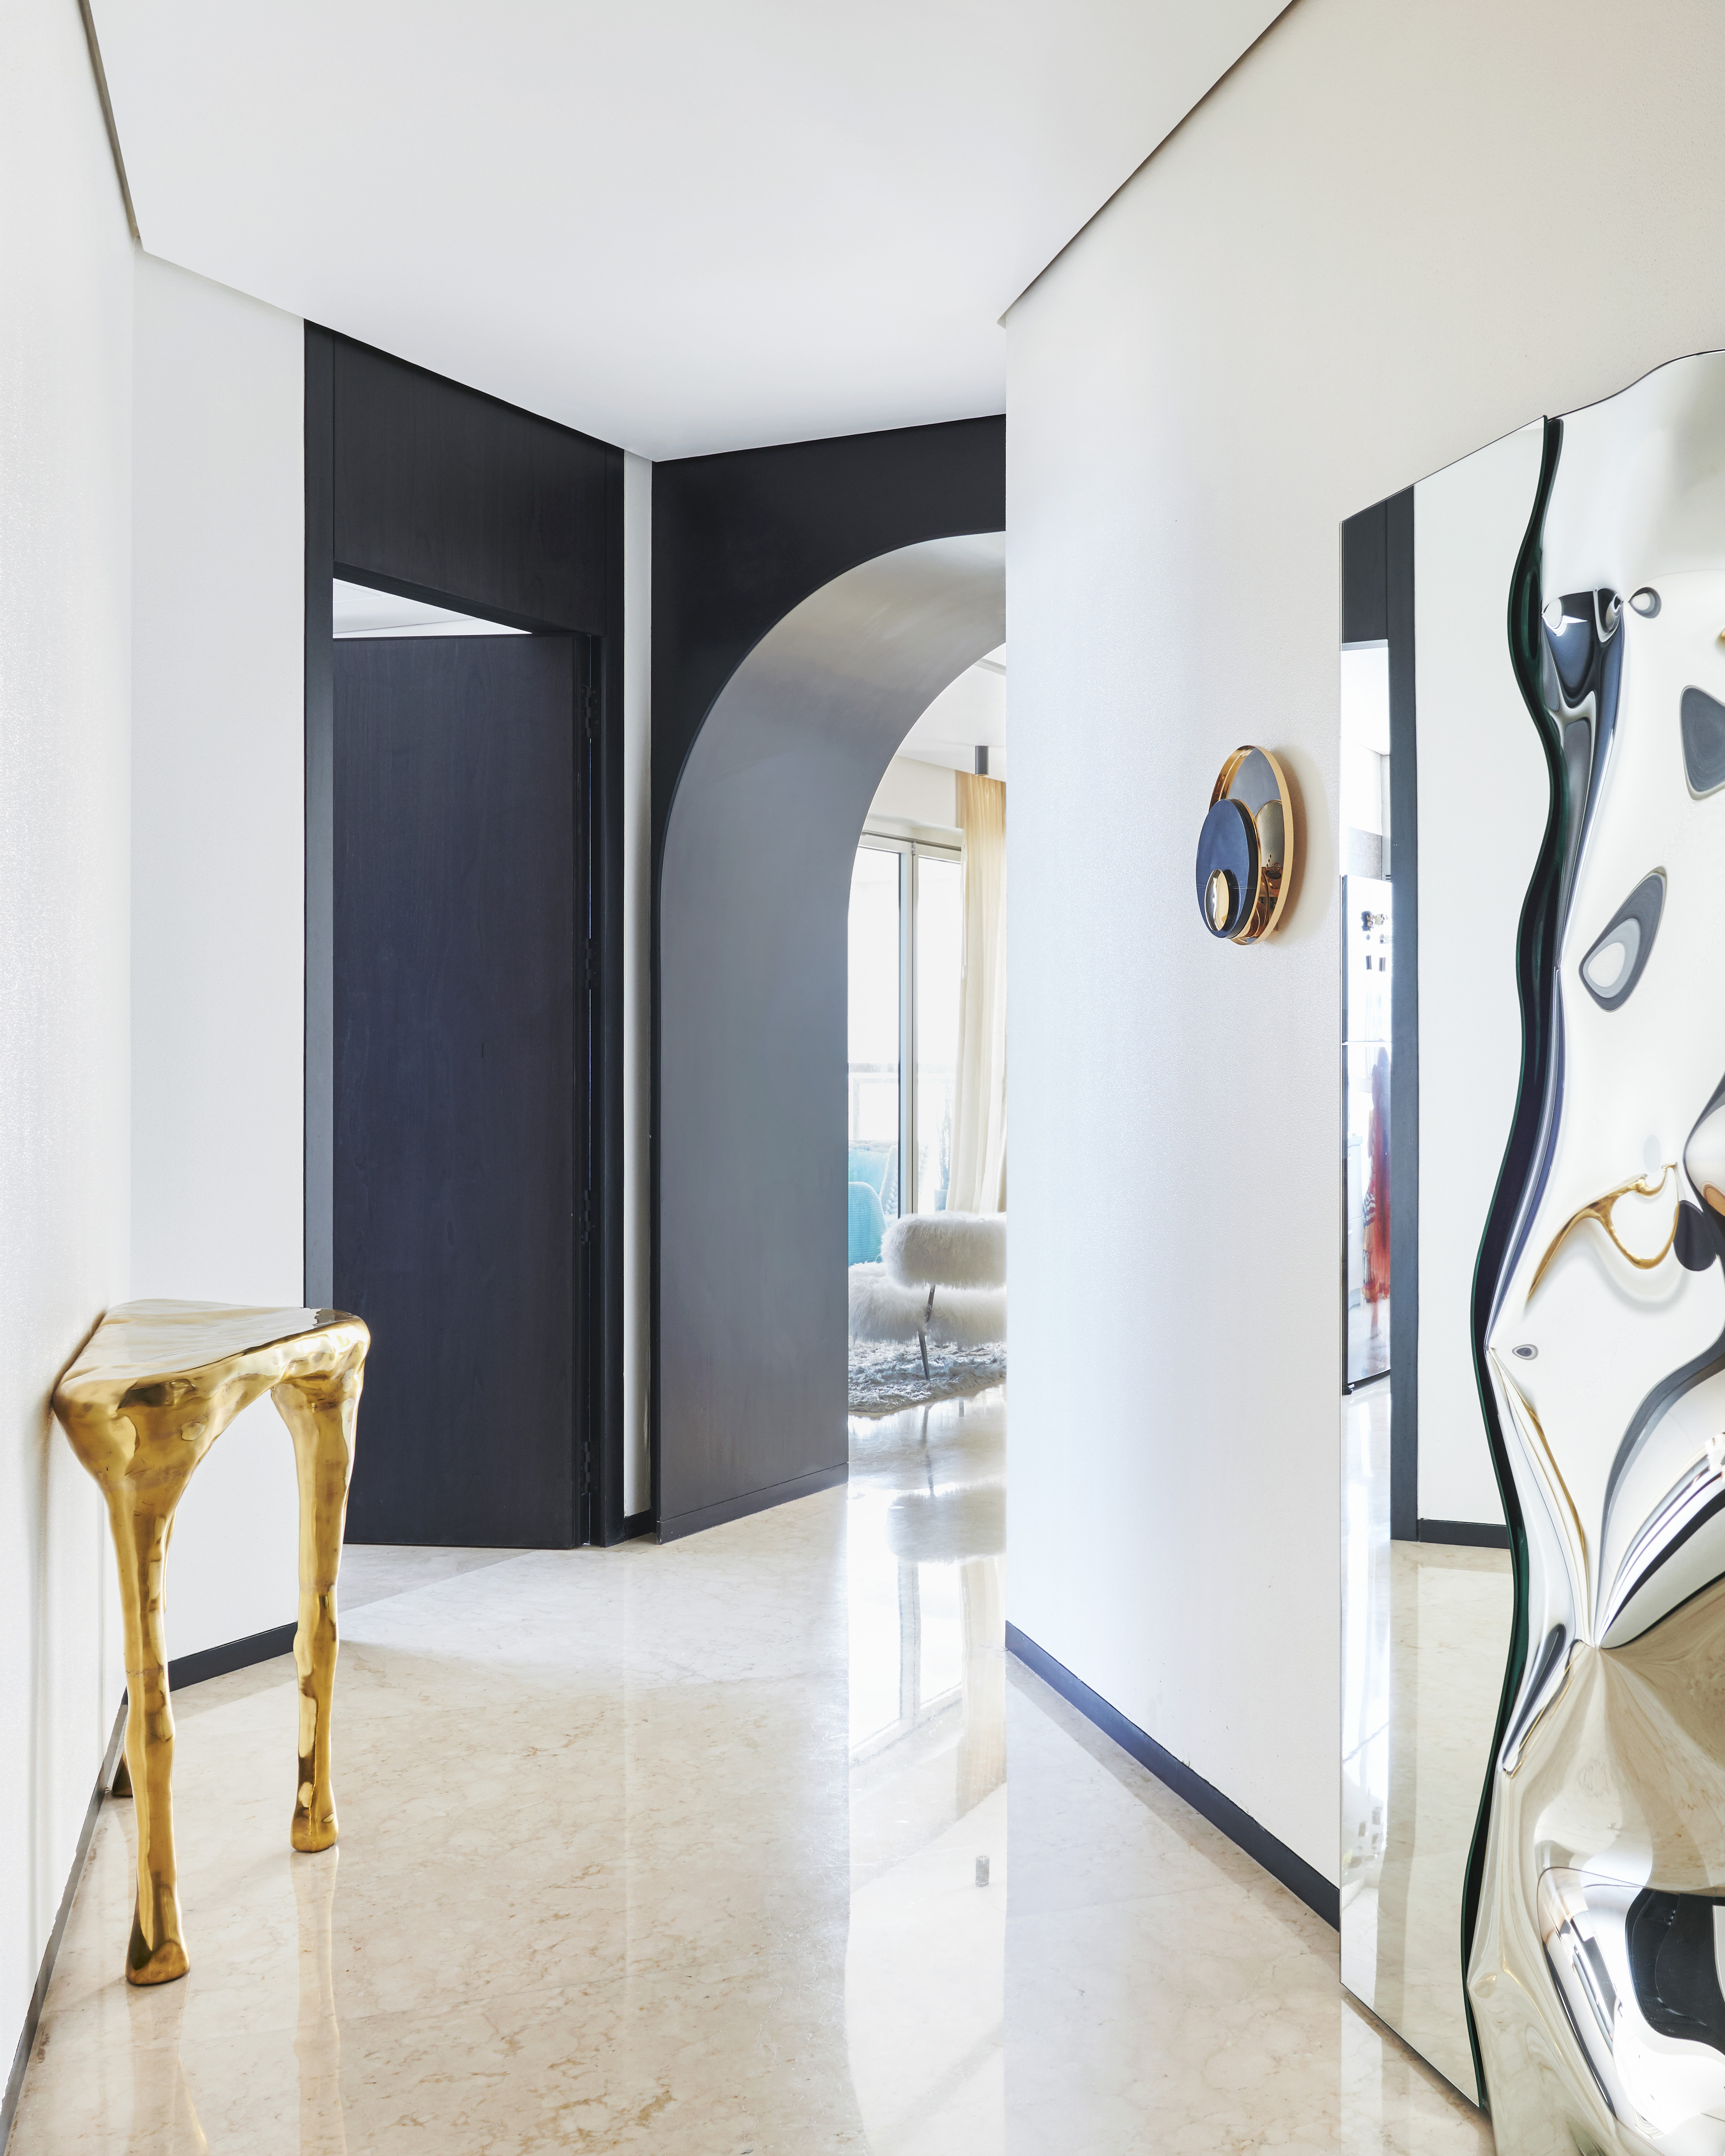 A Luxury Apartment That Magnifies The Exclusive Lifestyle Experience luxury apartment A Luxury Apartment That Magnifies The Exclusive Lifestyle Experience A Luxury Apartment That Magnifies The Exclusive Lifestyle Experience 4